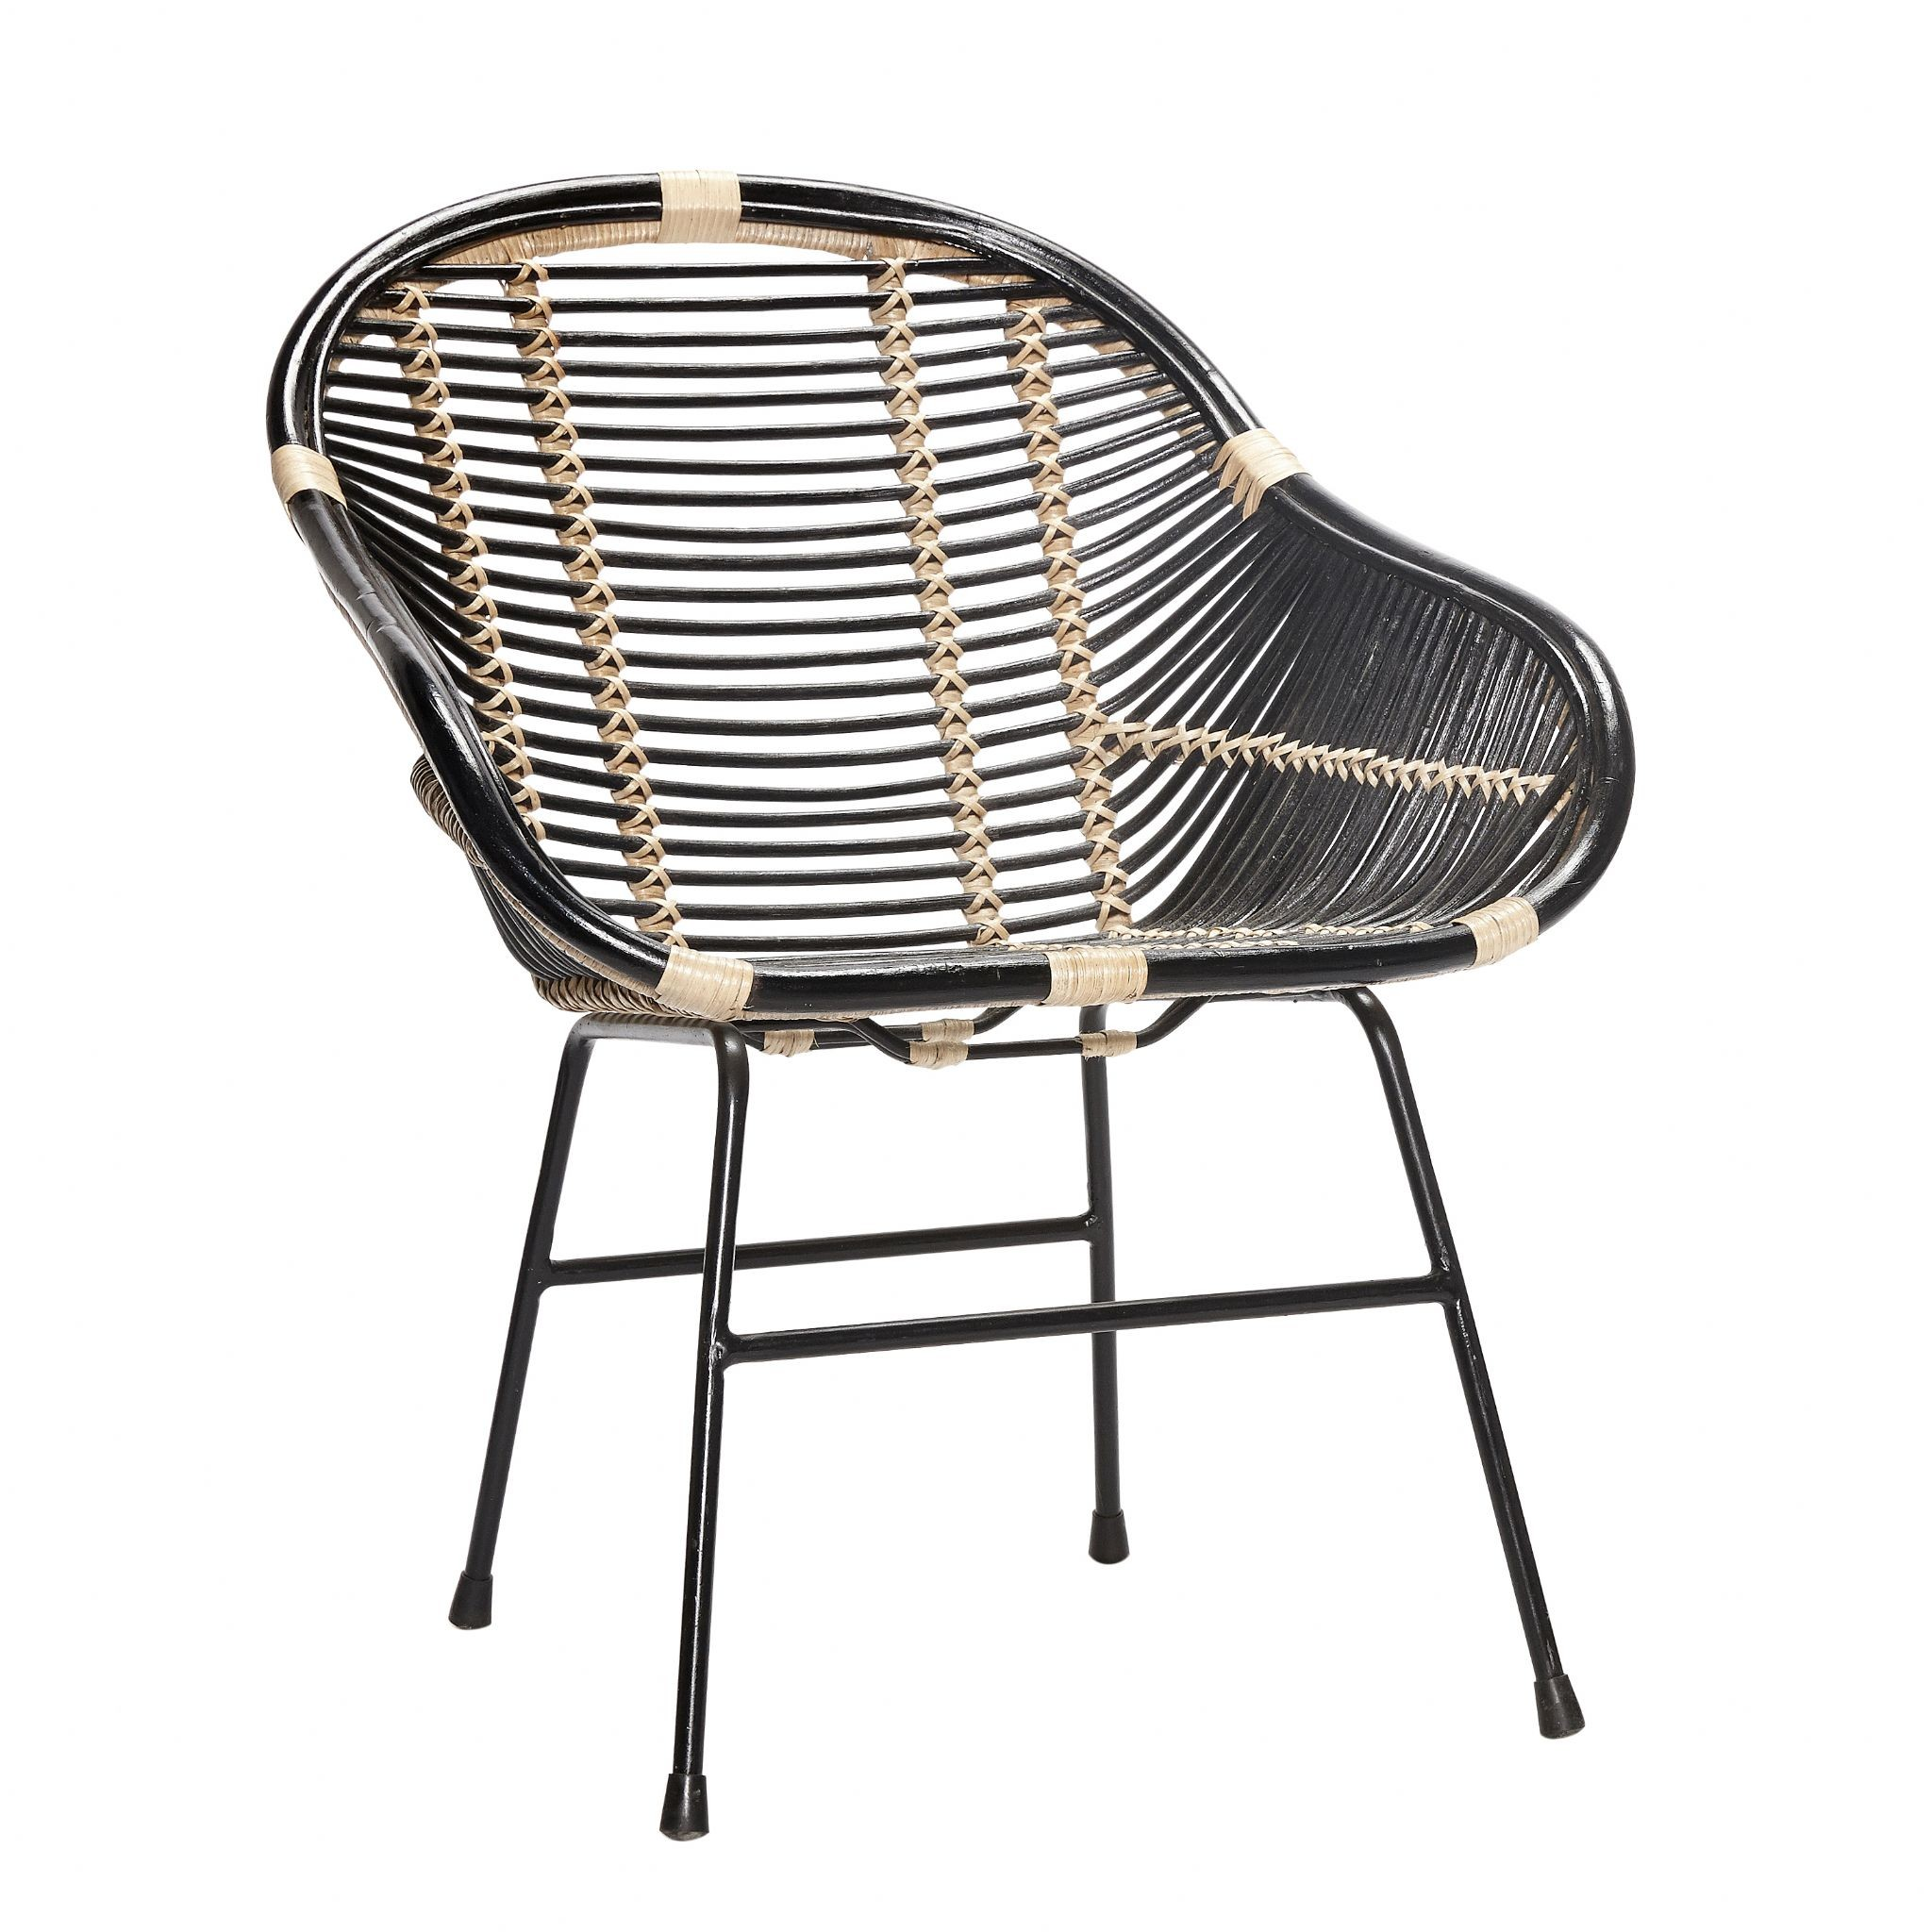 capri black natural rattan chair. Black Bedroom Furniture Sets. Home Design Ideas